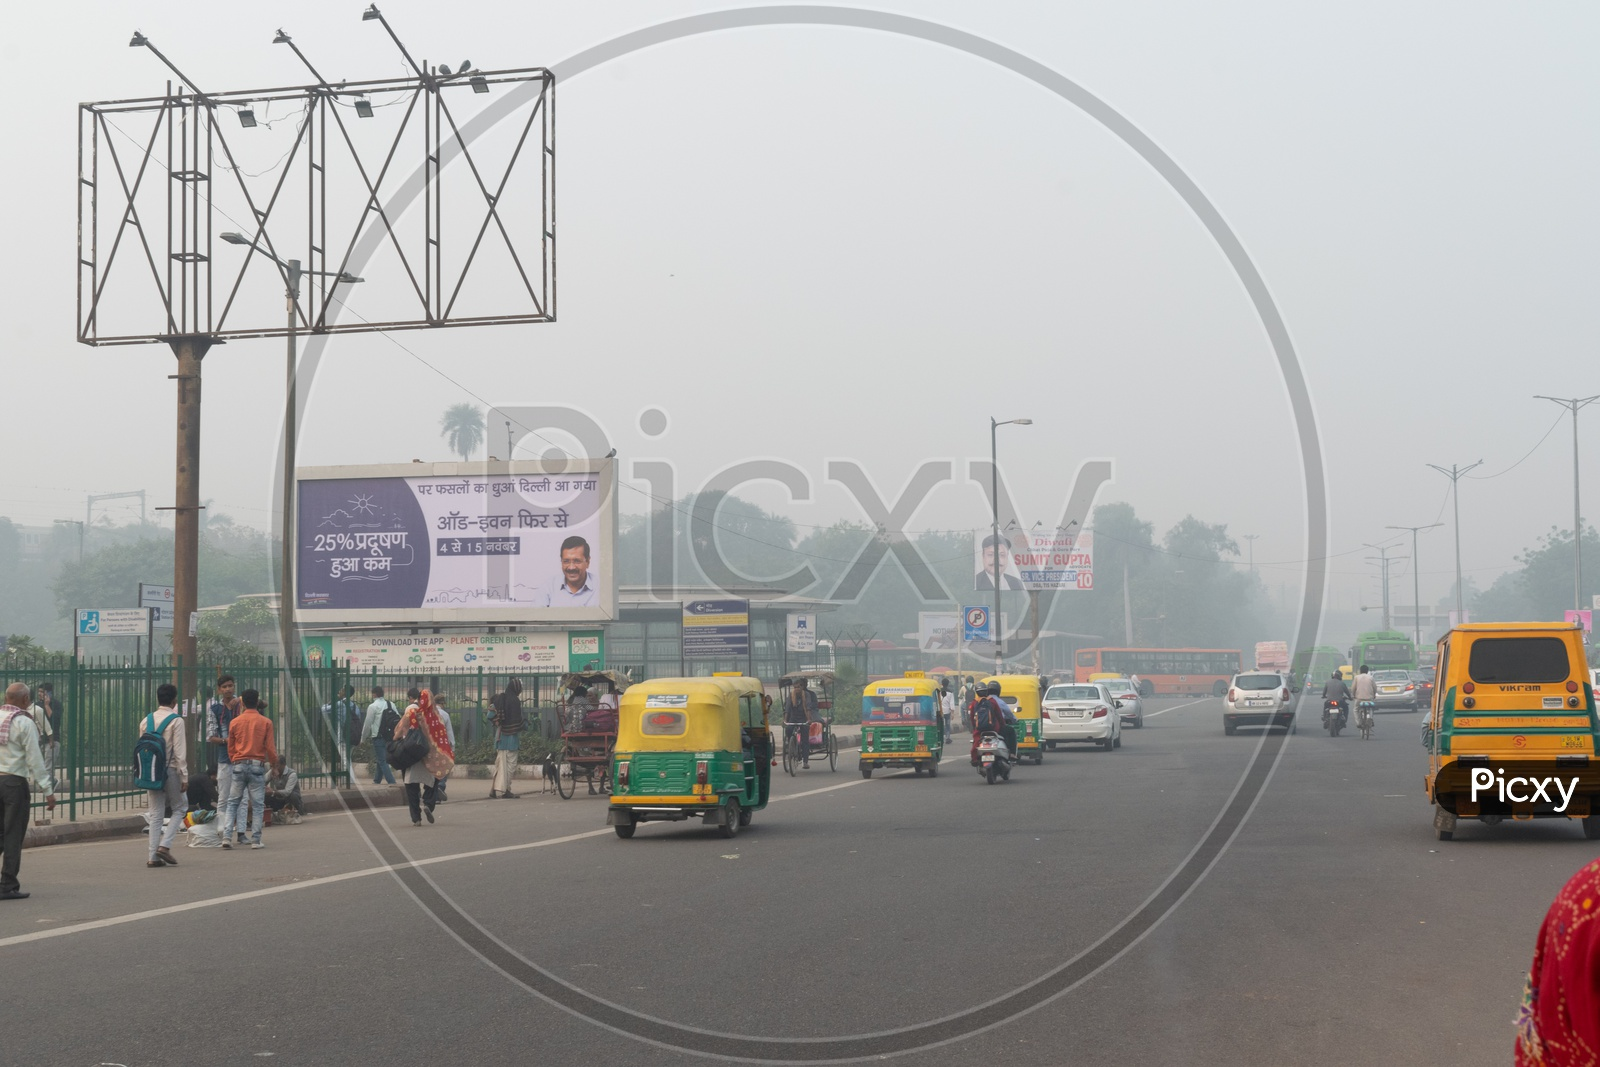 Odd Even rule due to Pollution(smog) at severe level in Delhi NCR after Diwali